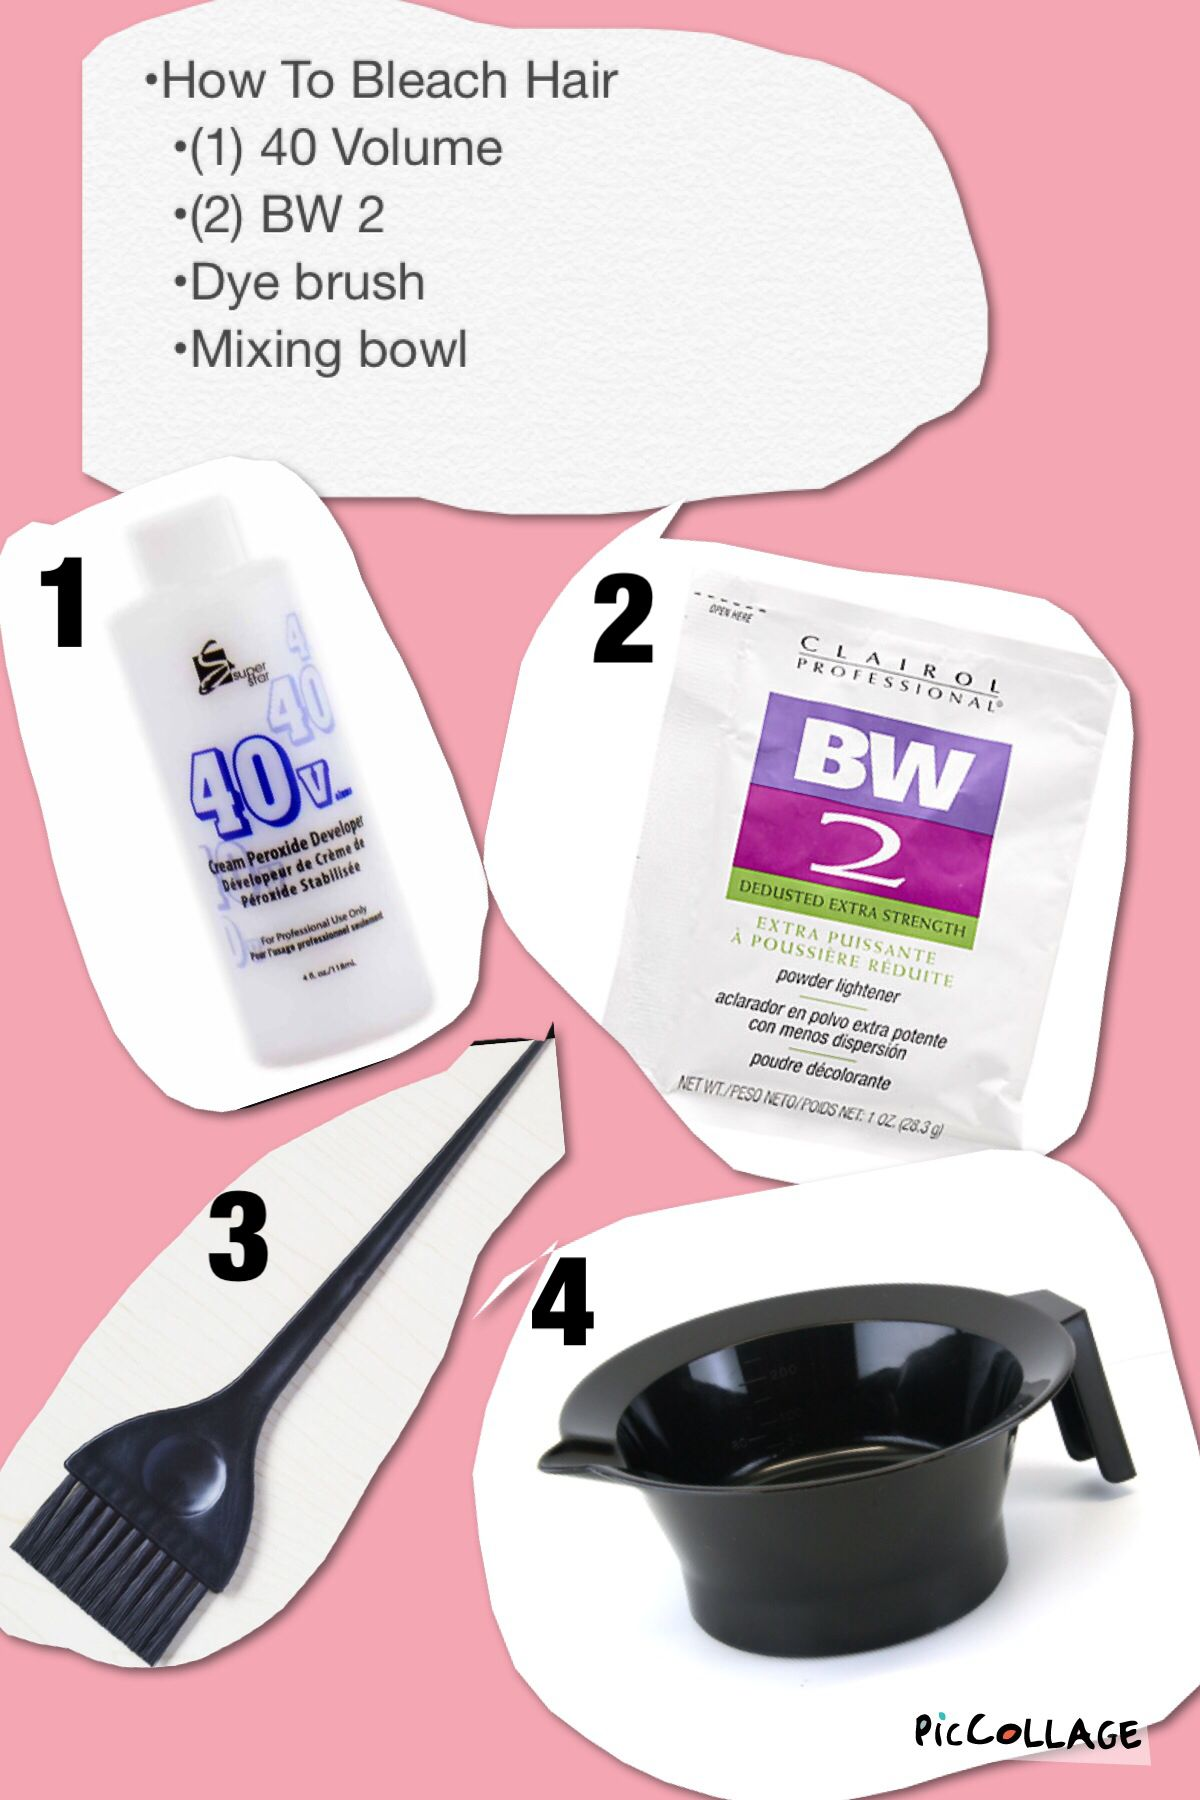 How To Bleach Hair 1 Bottle Of 40 Volume 2 Packs Of Bw 2 Powder